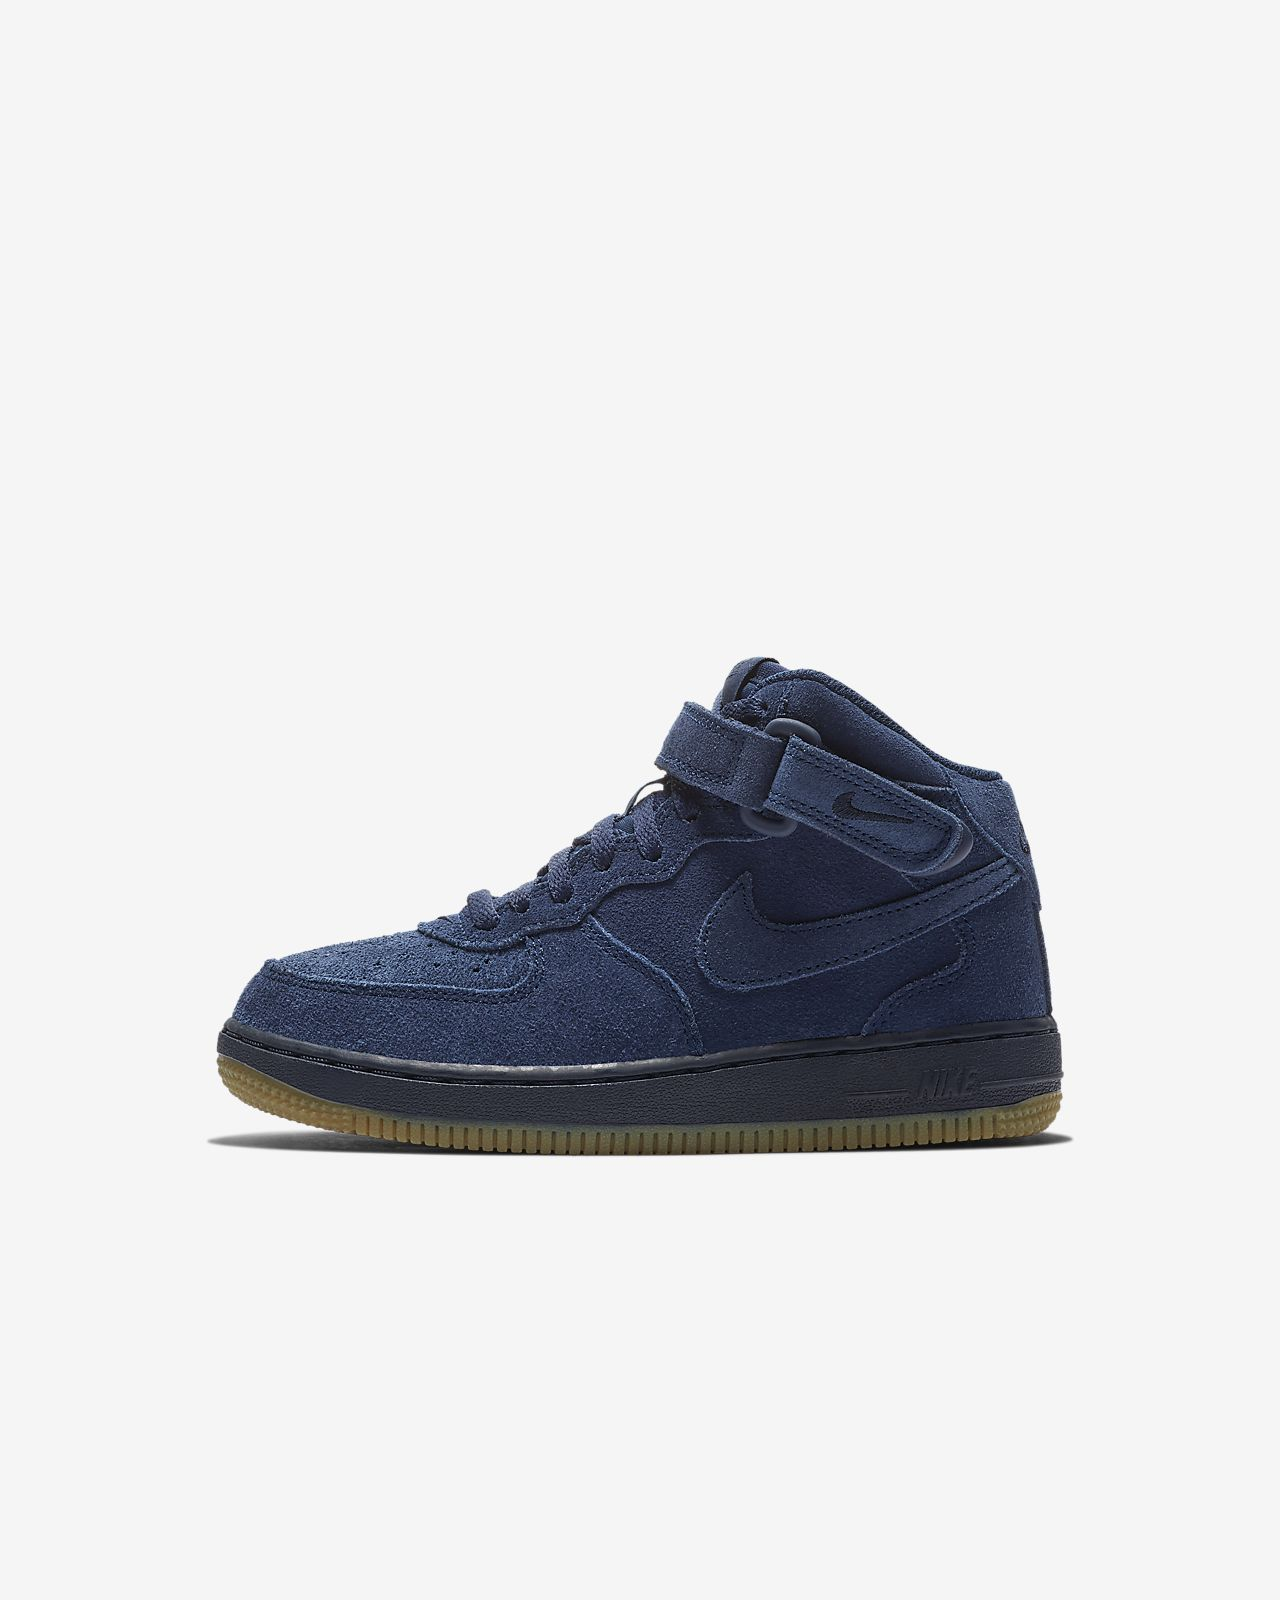 Nike Air Force 1 Mid LV8 Little Kids' Shoe